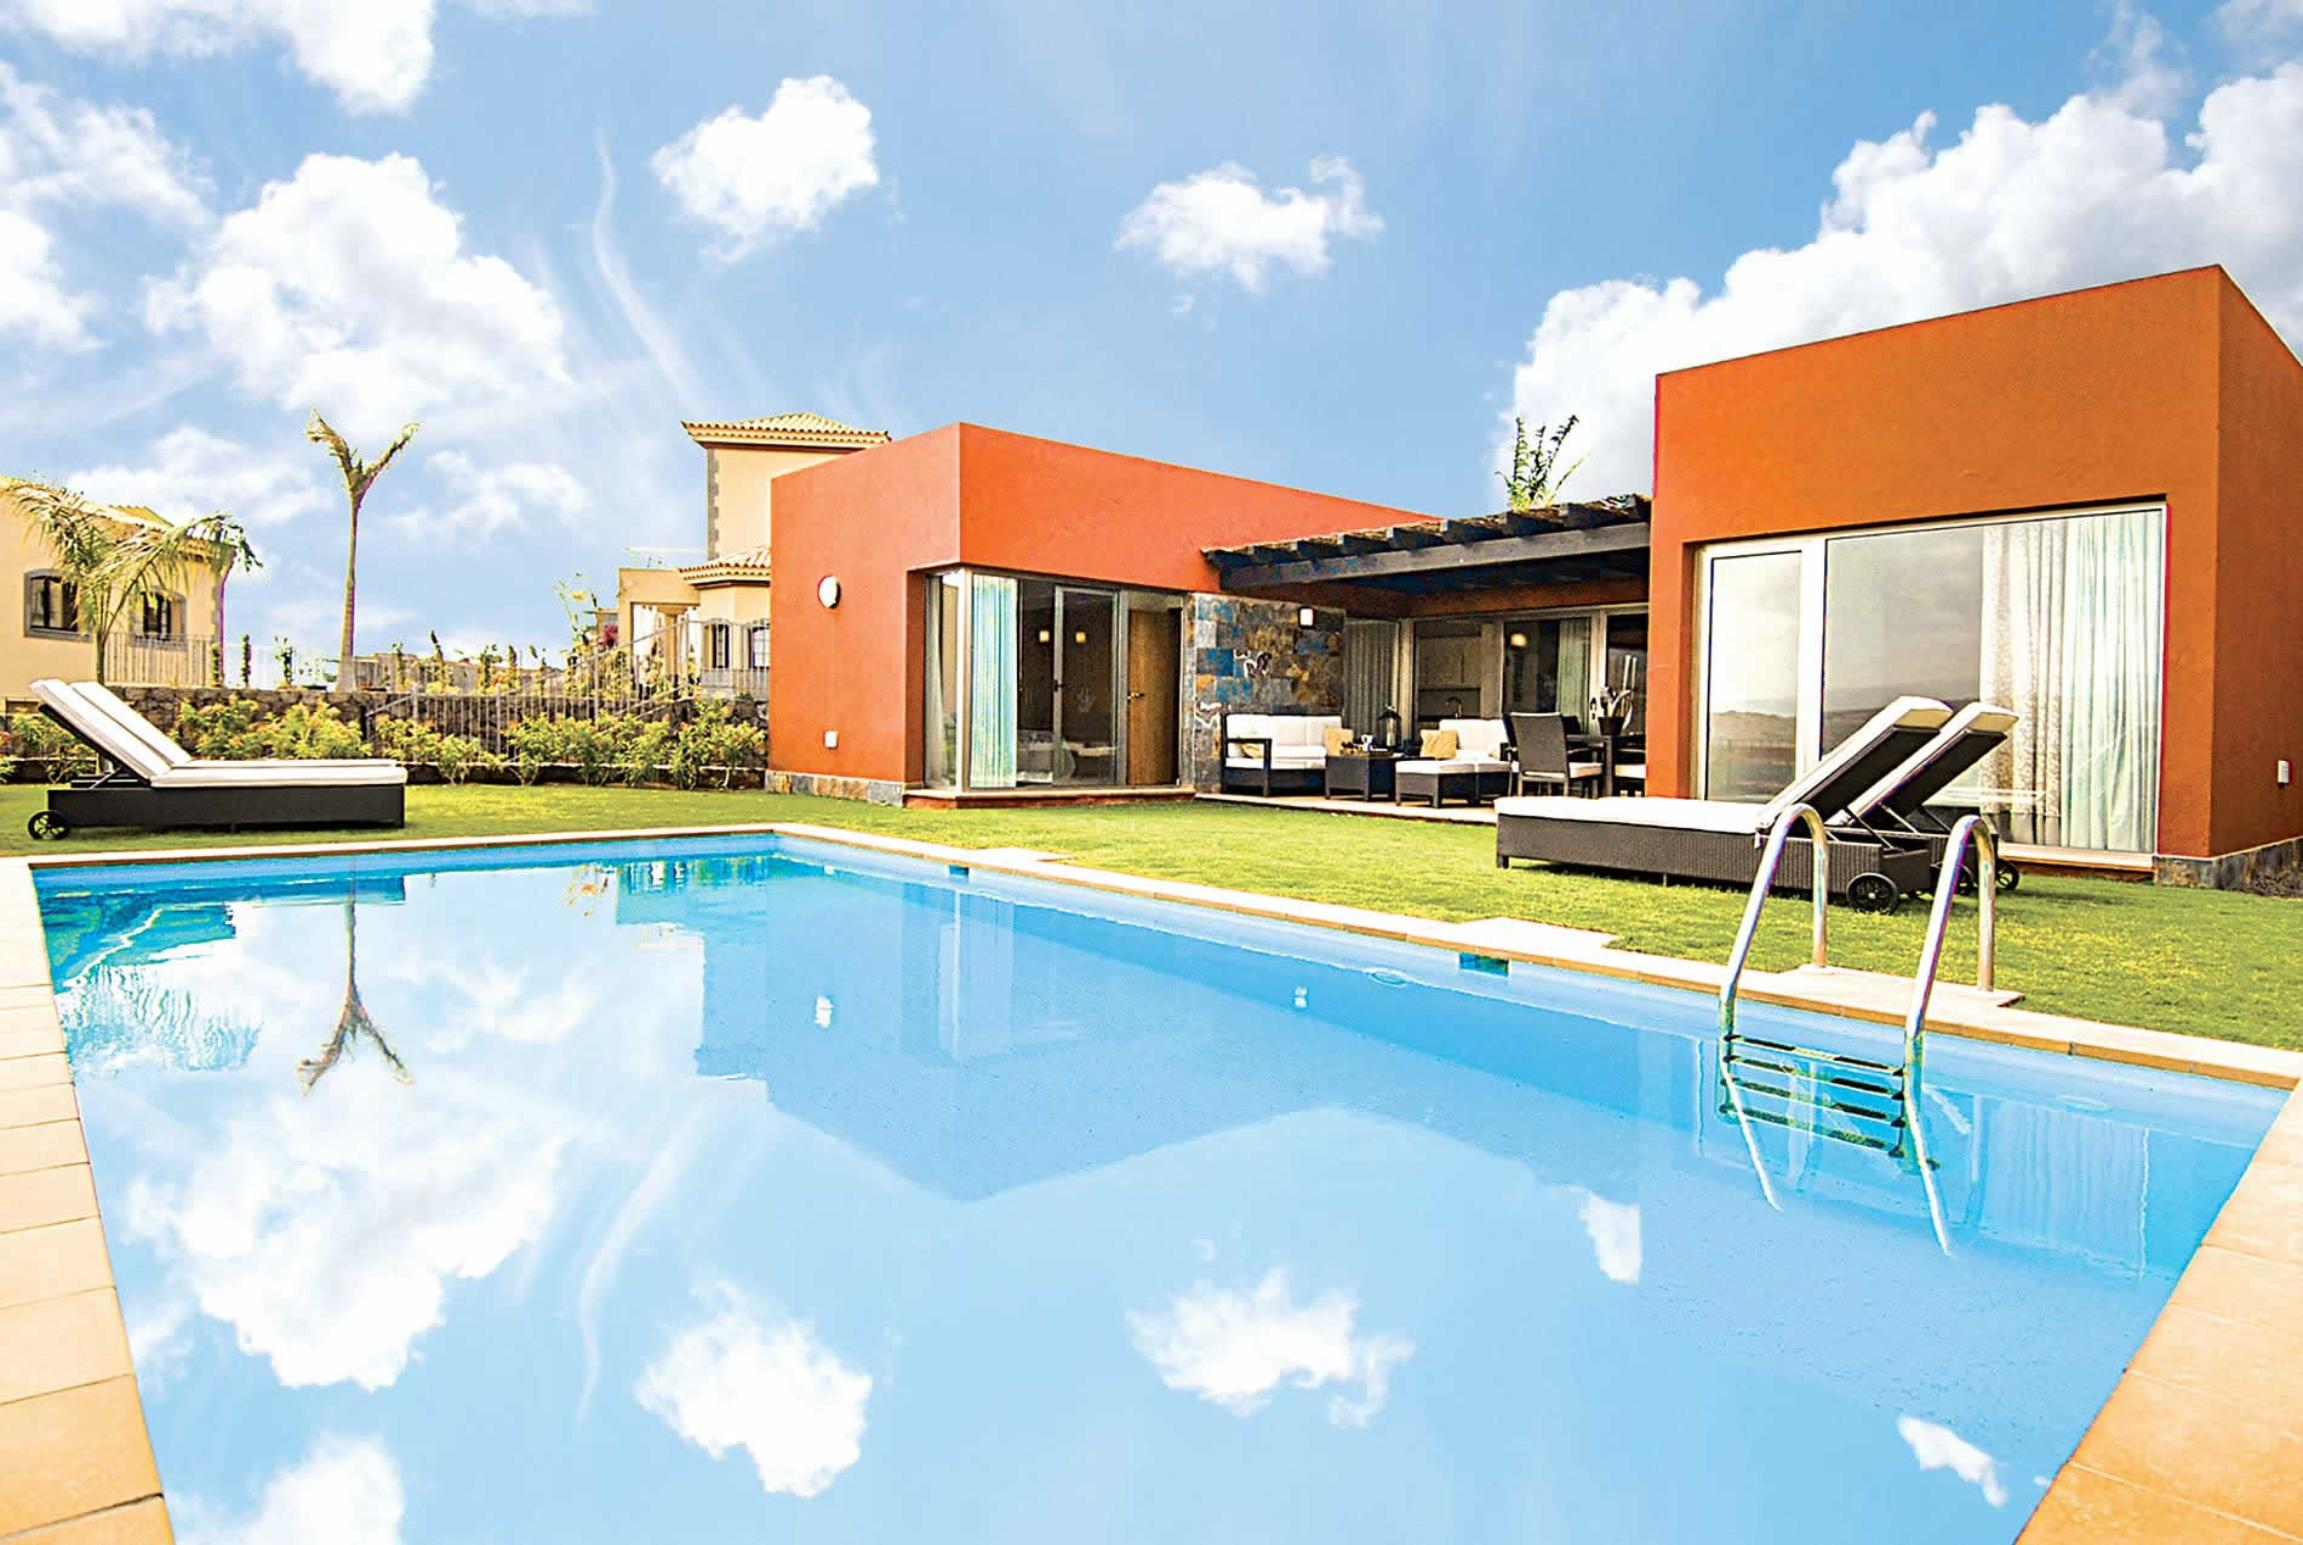 Read more about Par 4 Villa 12 villa